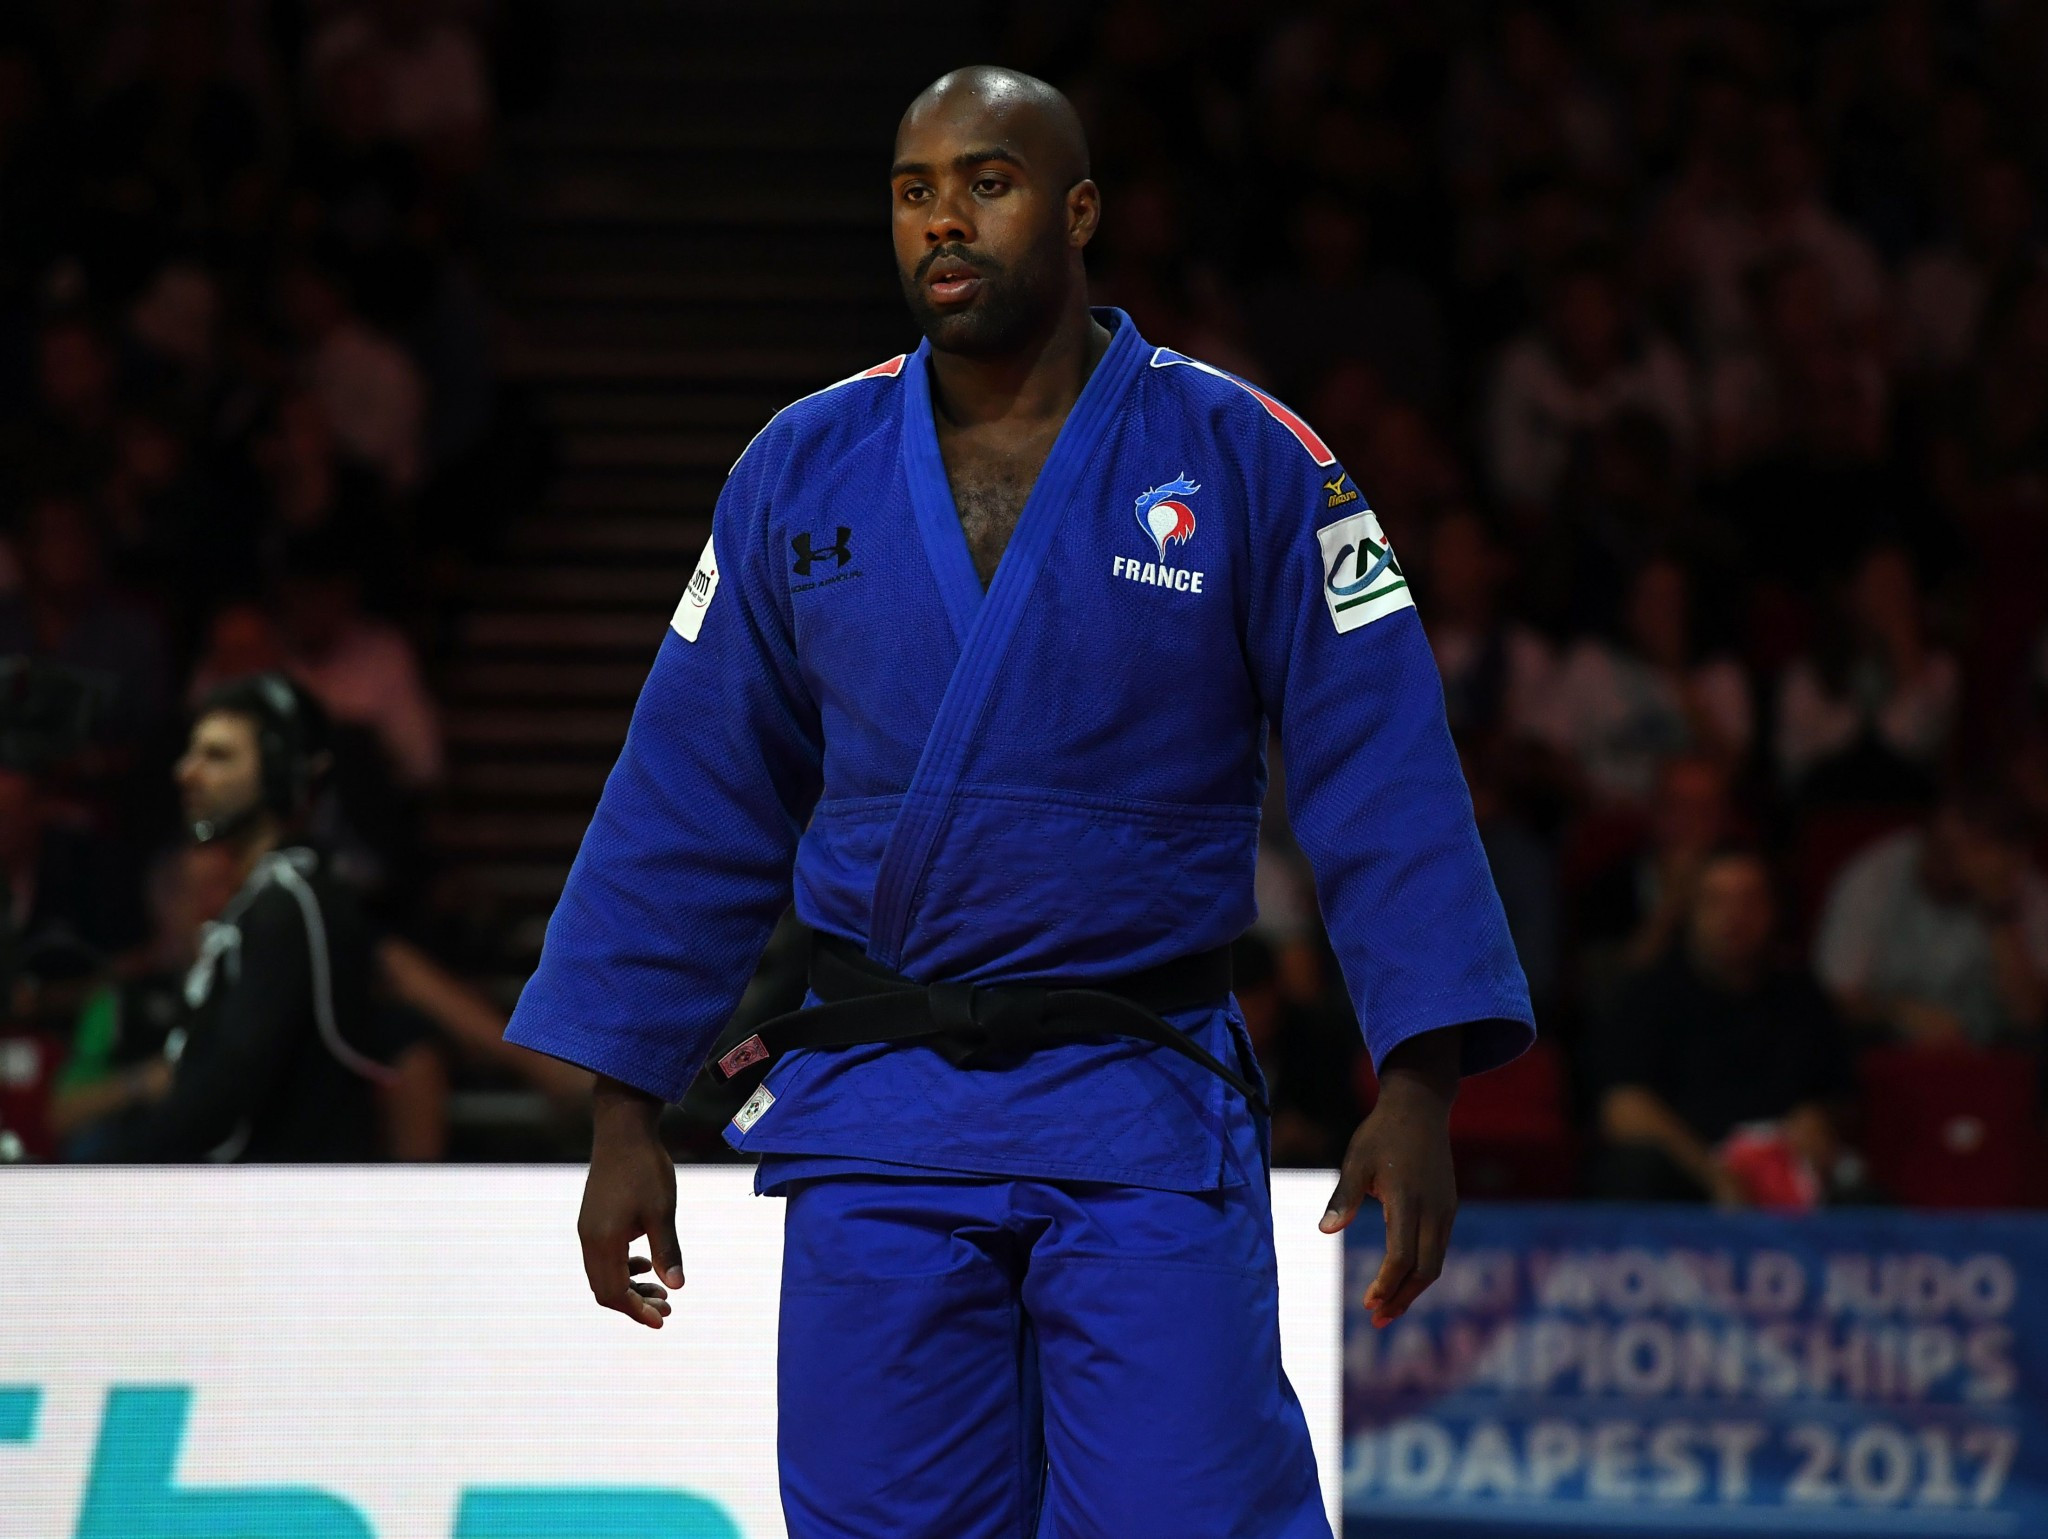 Riner could return as chairman of IJF Athletes' Commission as new members revealed